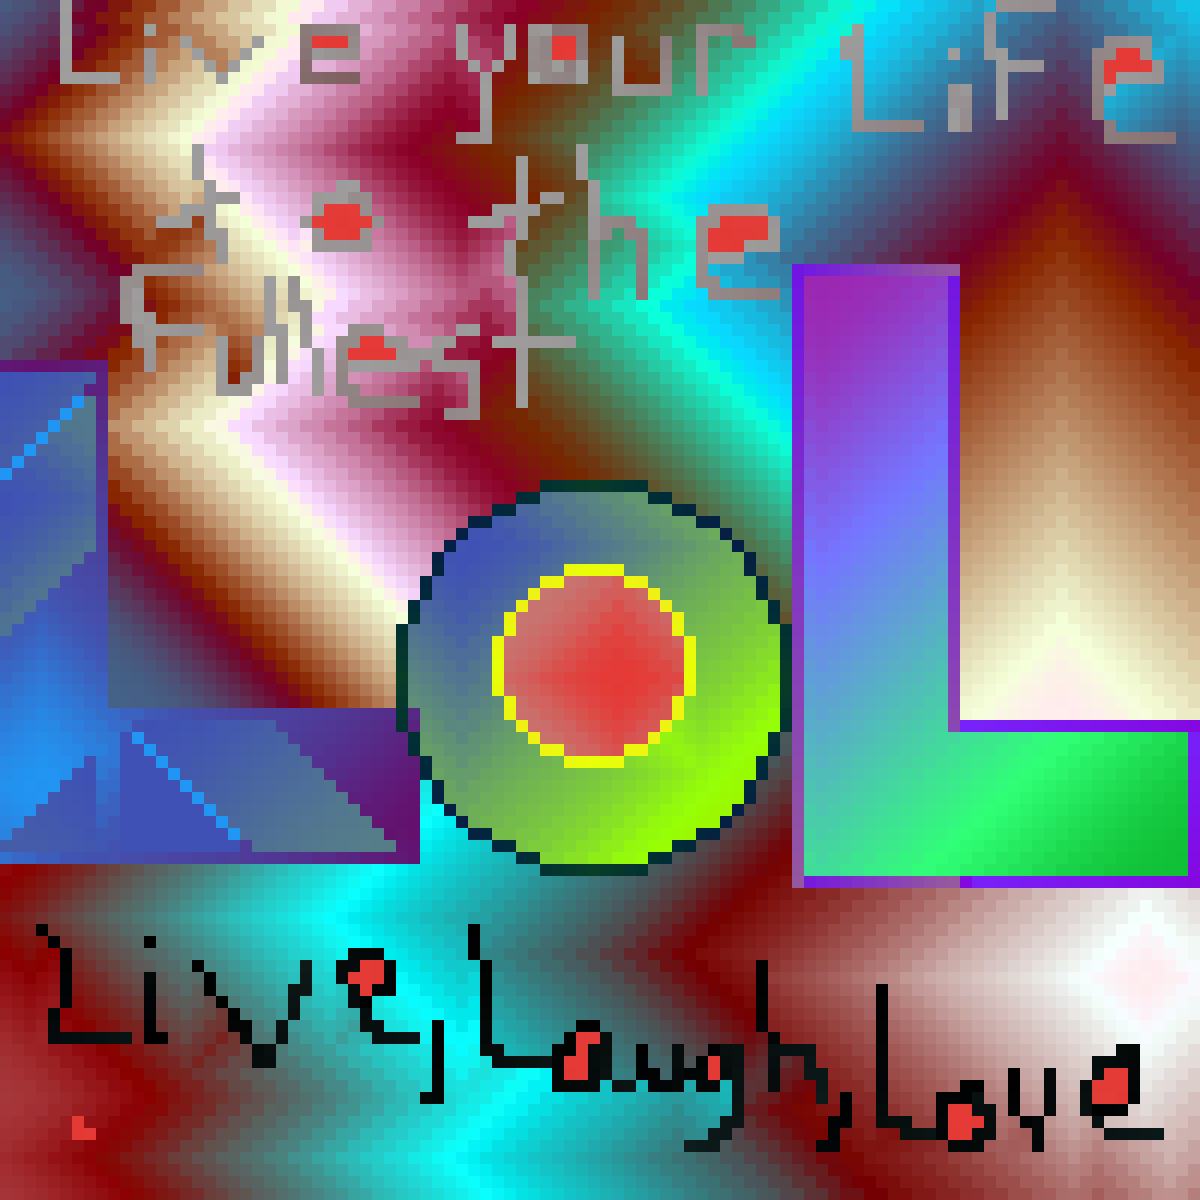 LIVE, LAUGH, LOVE by giesea214